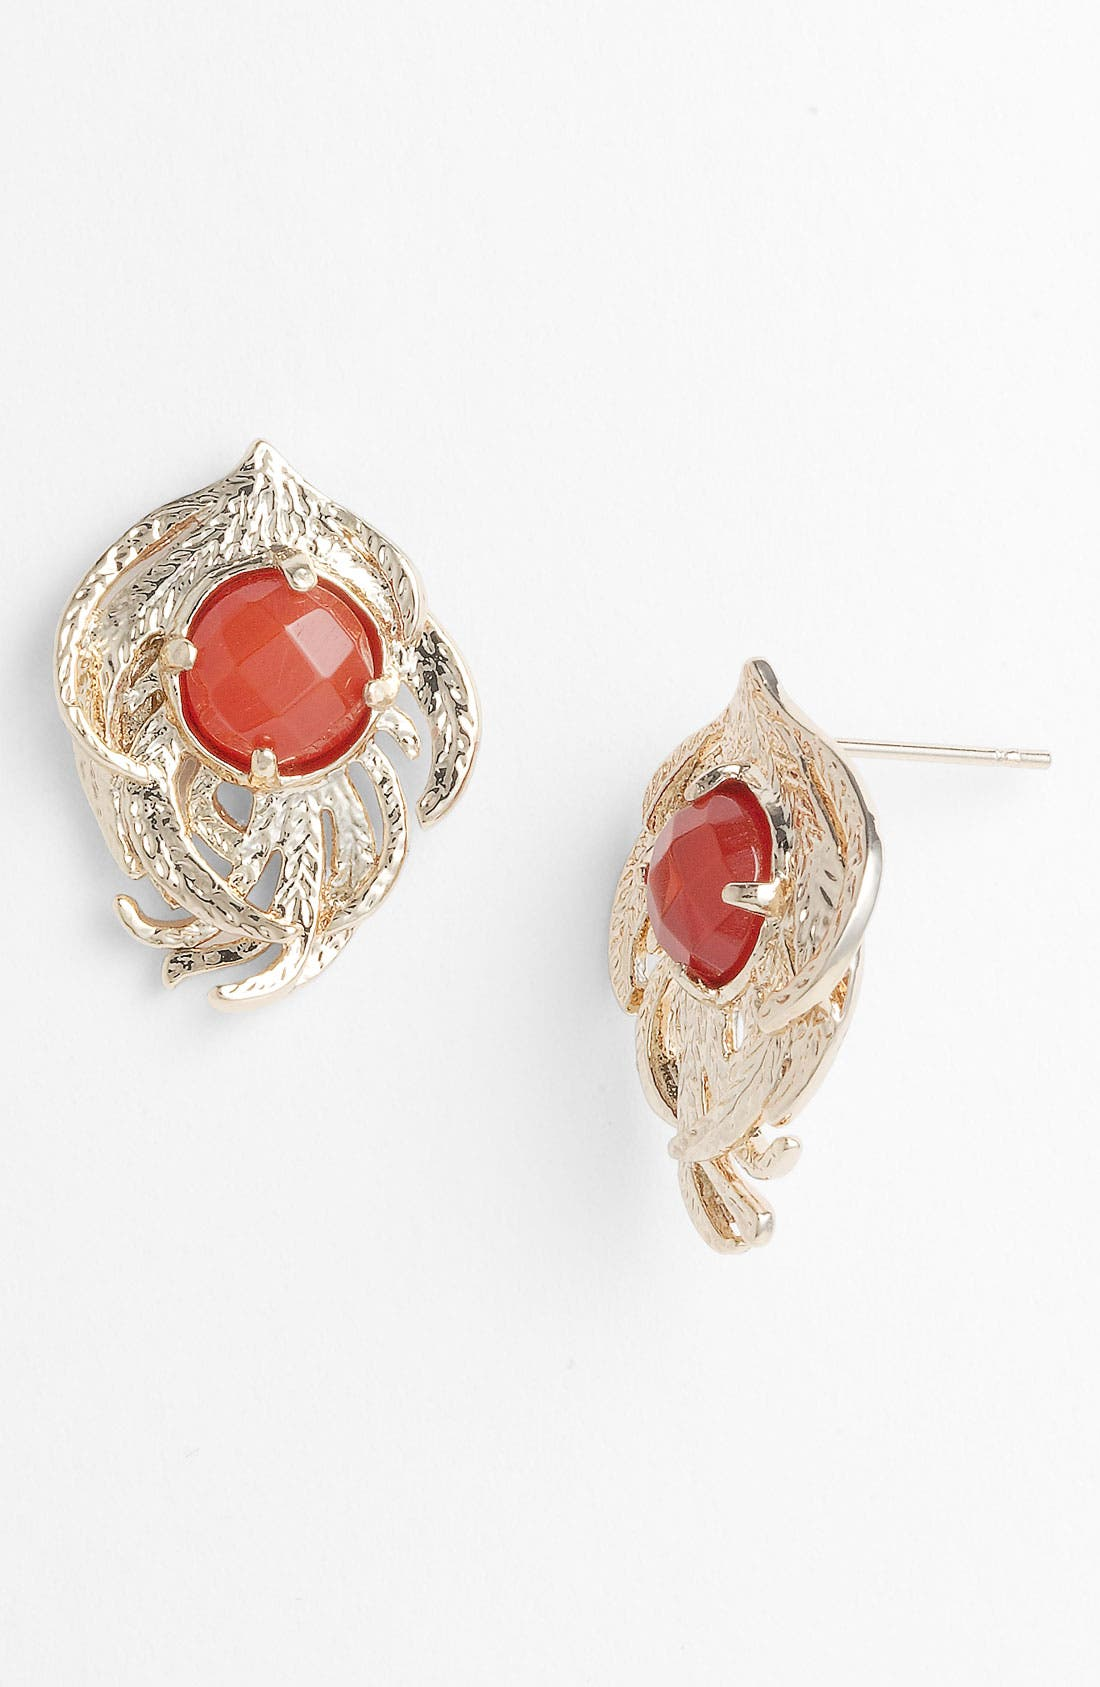 Alternate Image 1 Selected - Kendra Scott 'Hailey' Stud Earrings